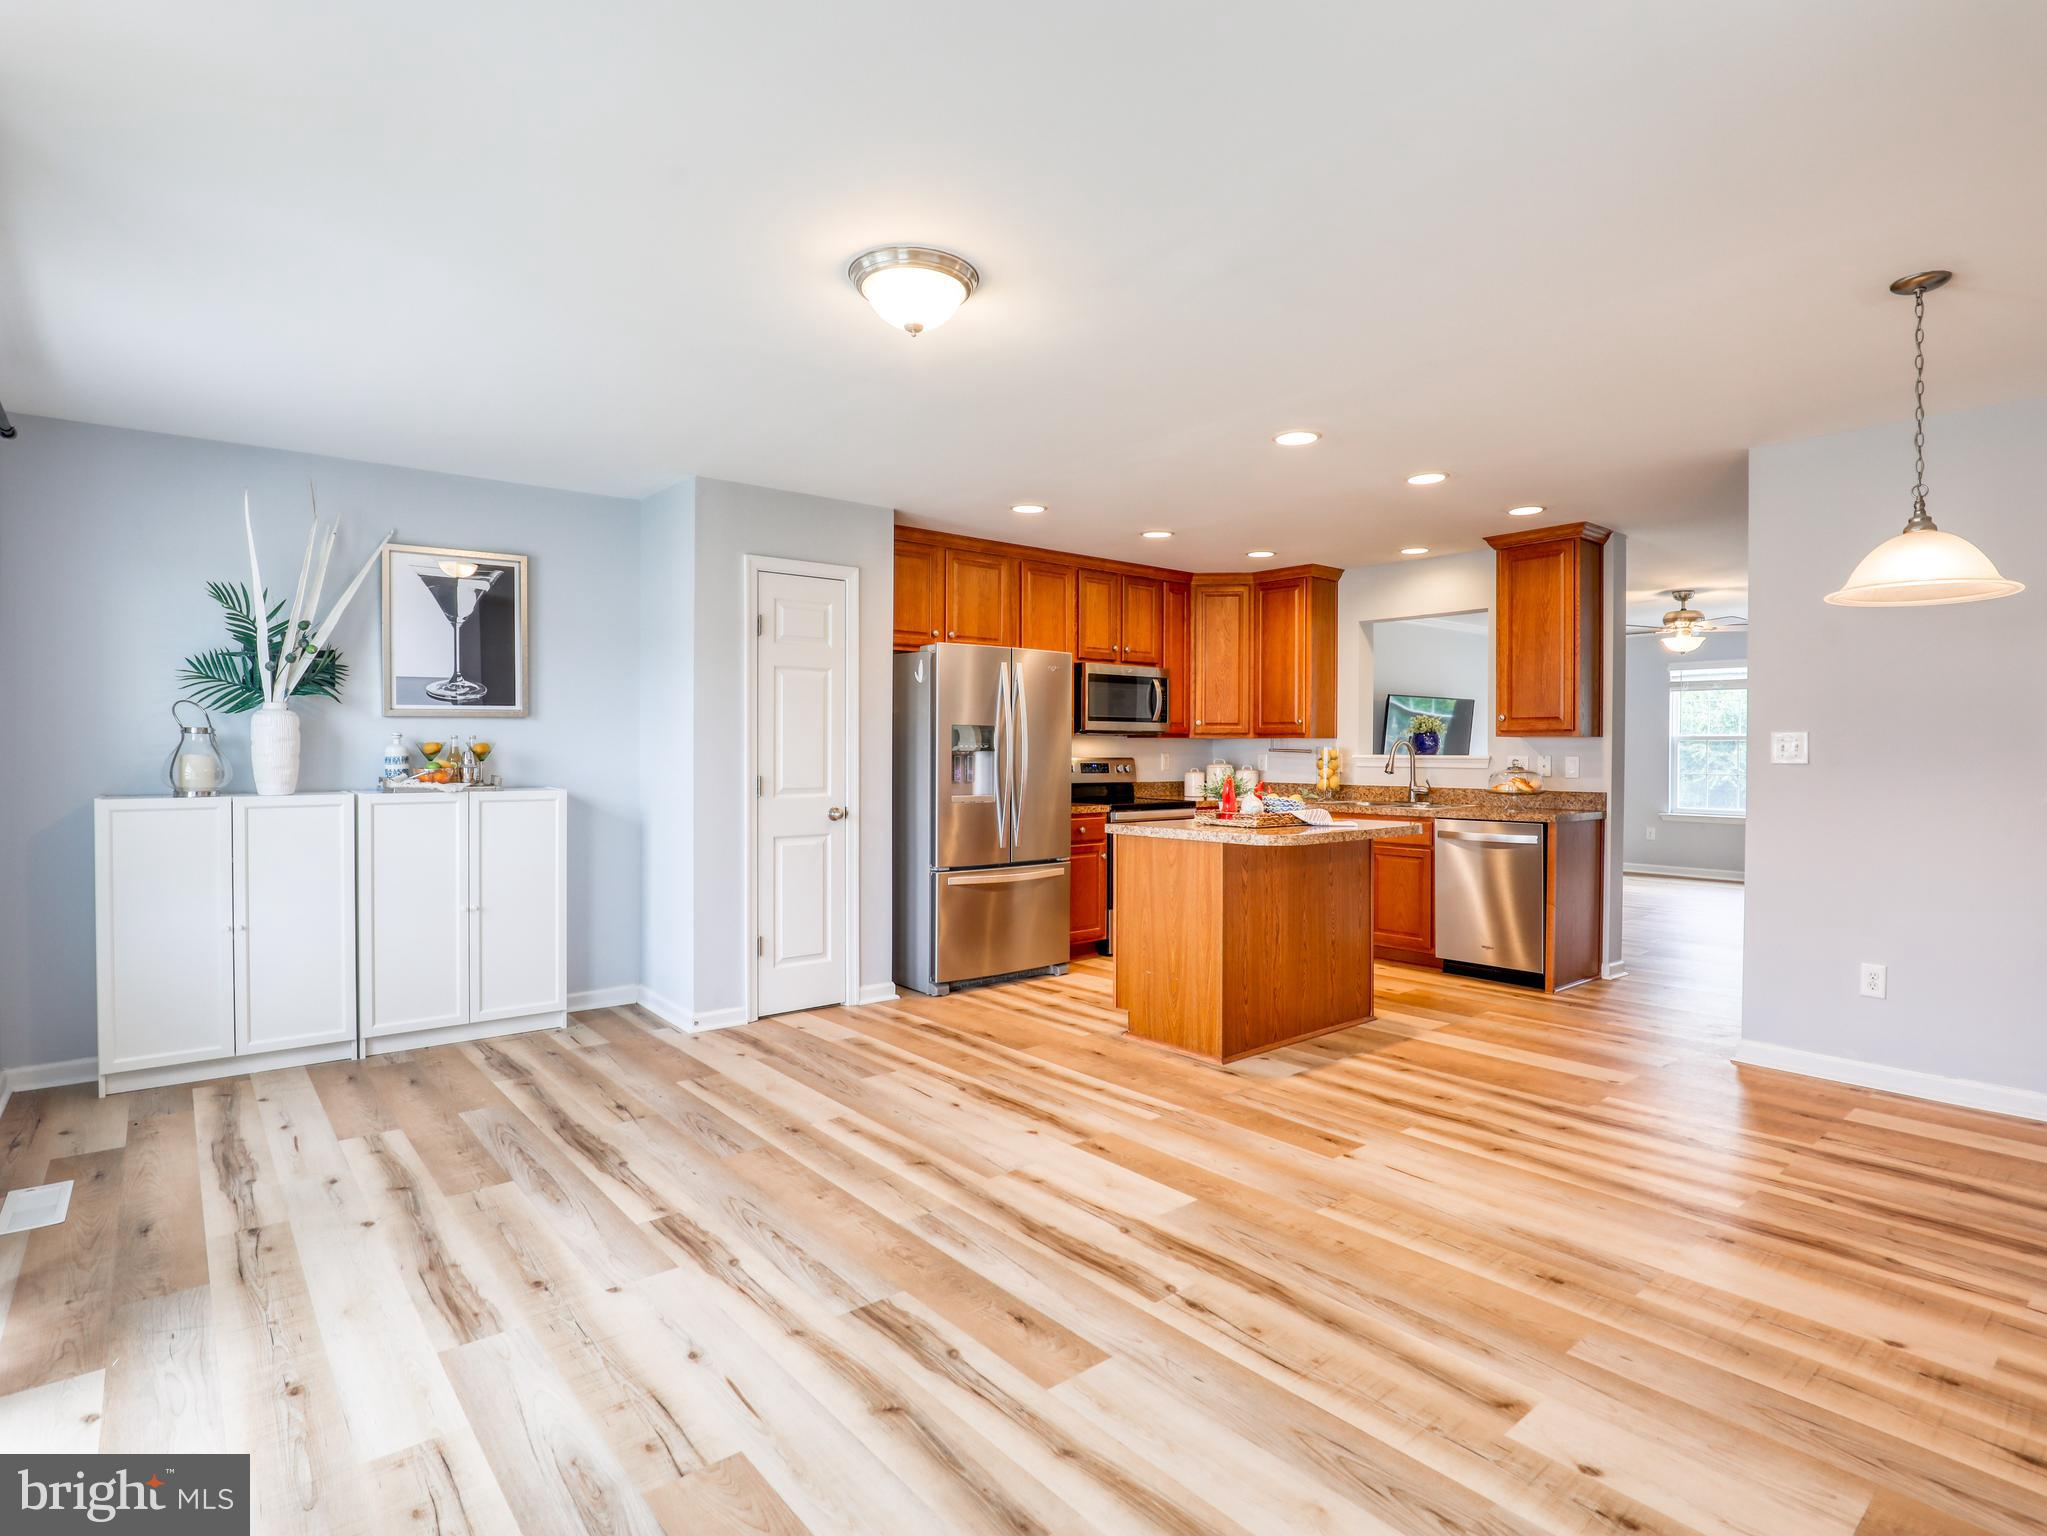 Brimming with updates and enhancements, this Fairfax Crossing townhome with attached garage is move-